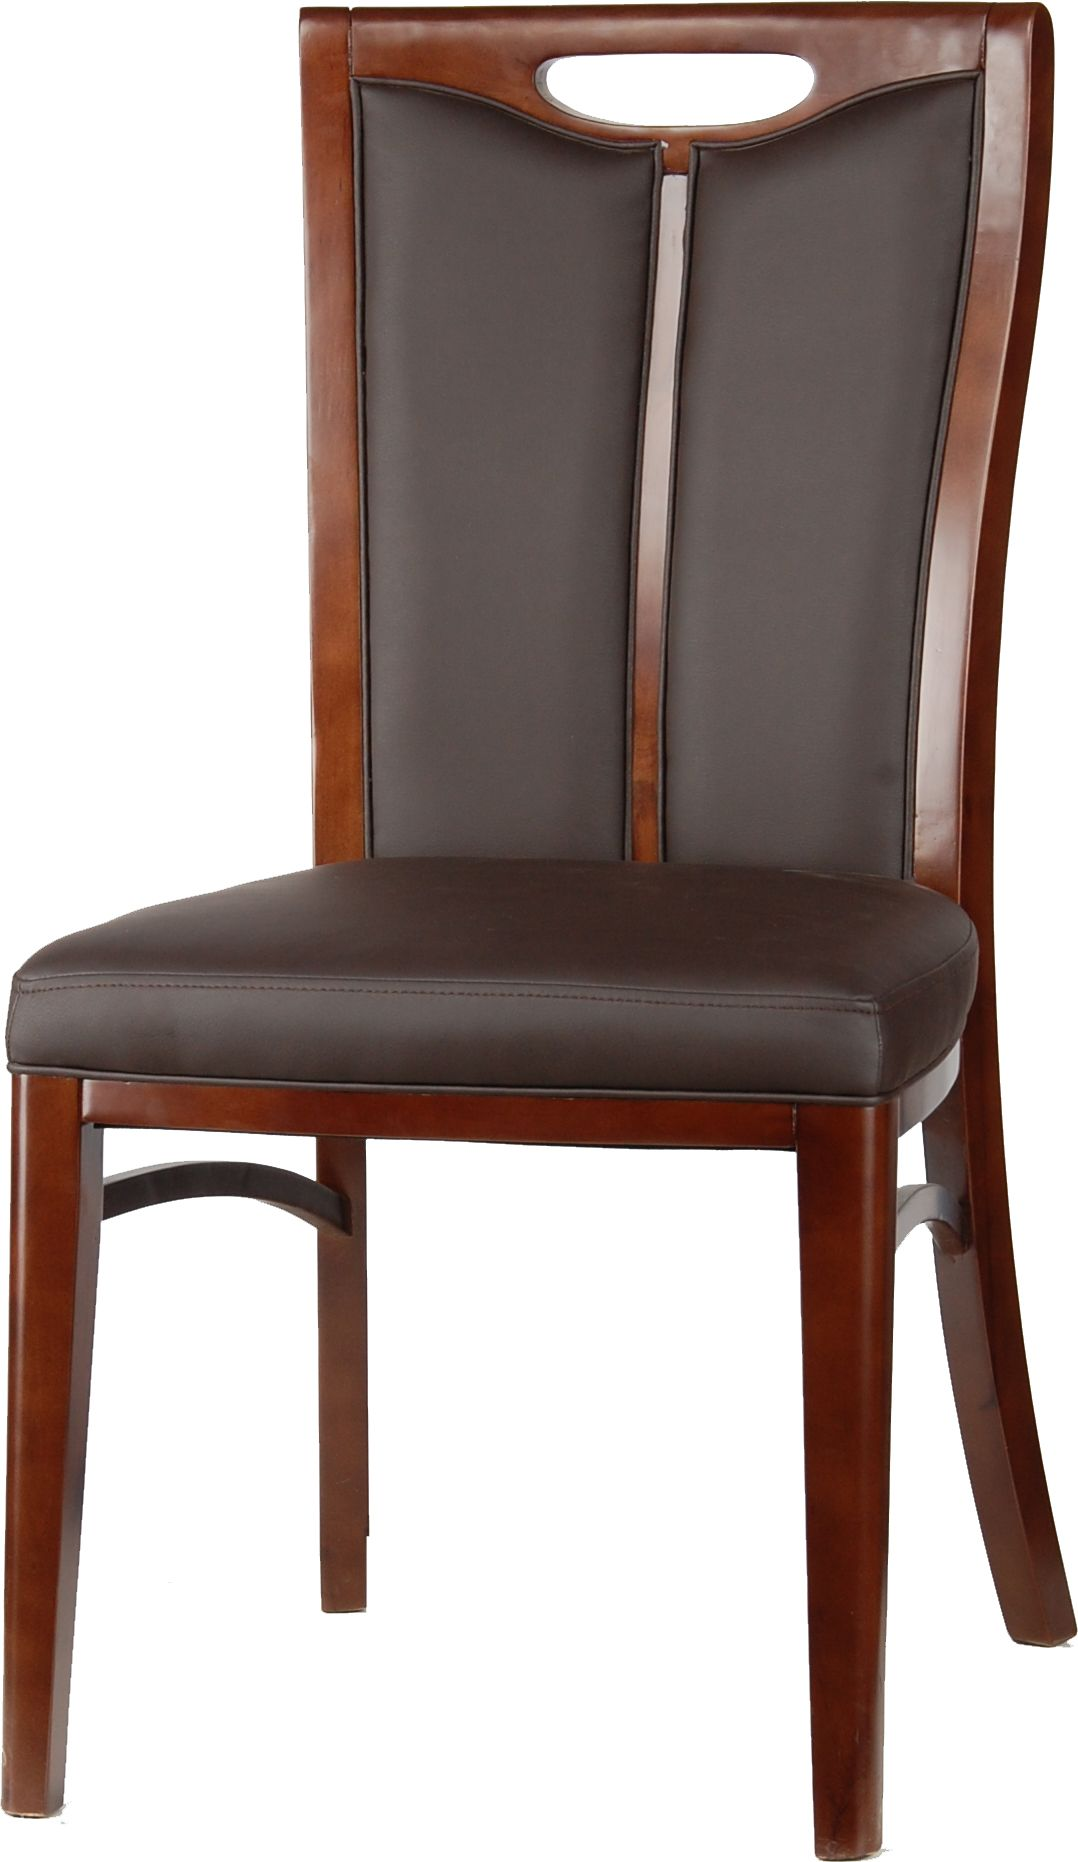 Contemporary restaurant furniture - Contemporary Restaurant Furniture Restaurant Chairs Contemporary 1 500 Pieces